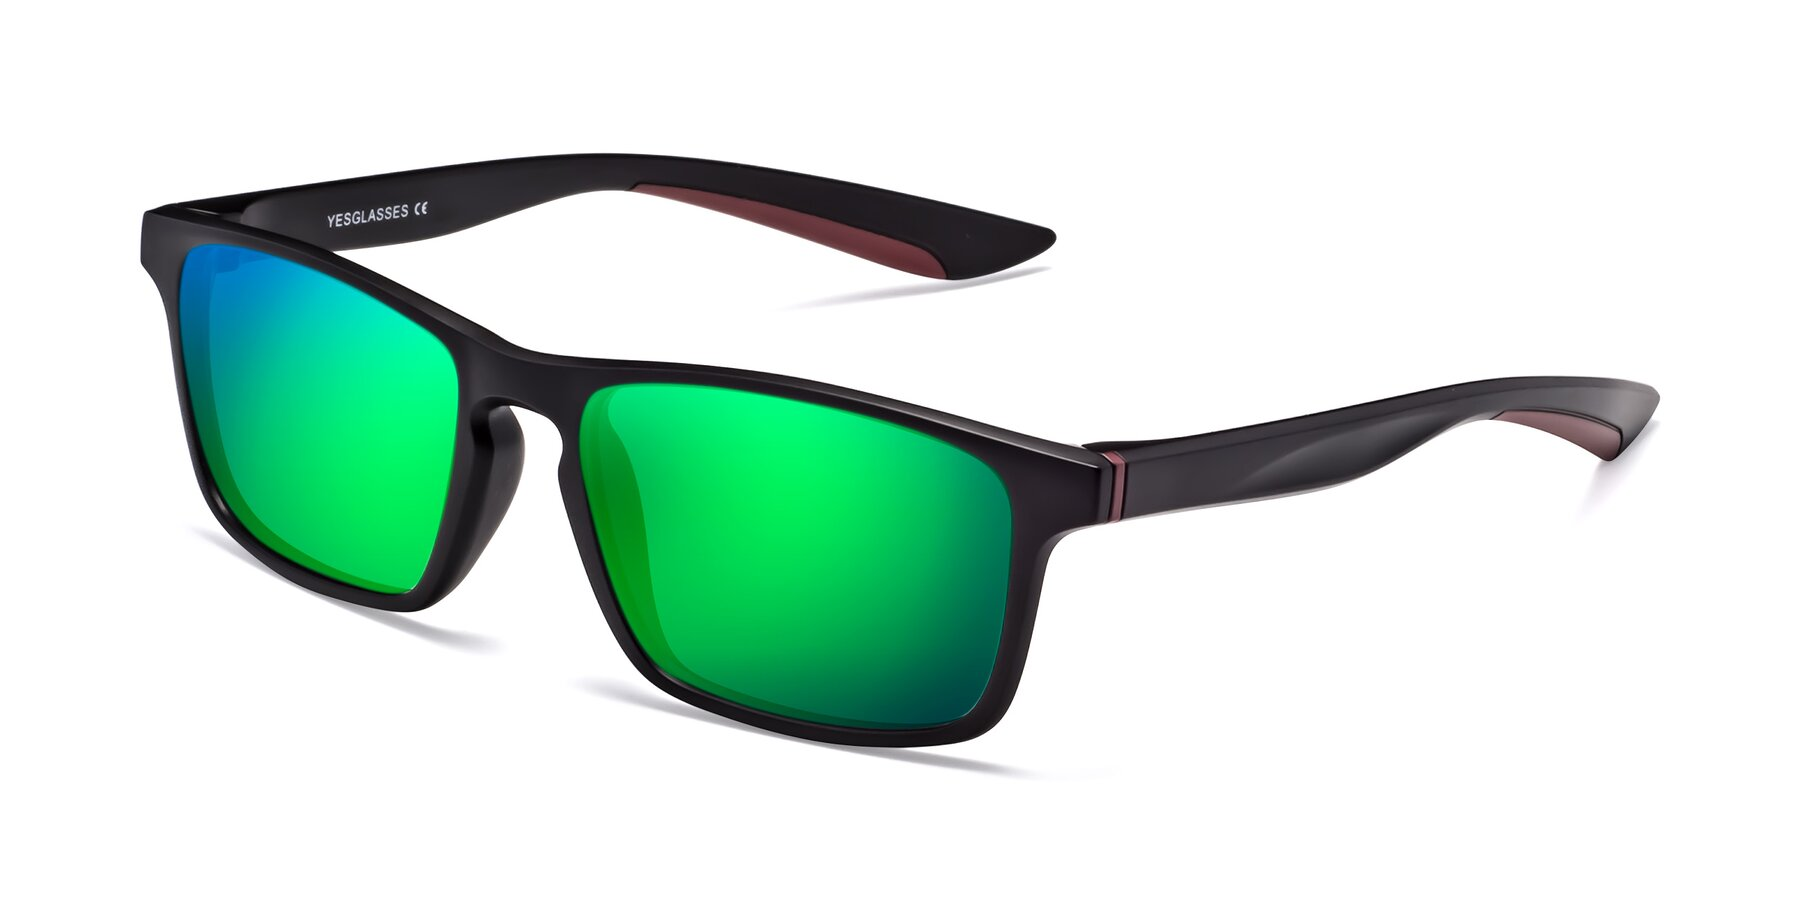 Angle of Passion in Matte Black-Wine with Green Mirrored Lenses